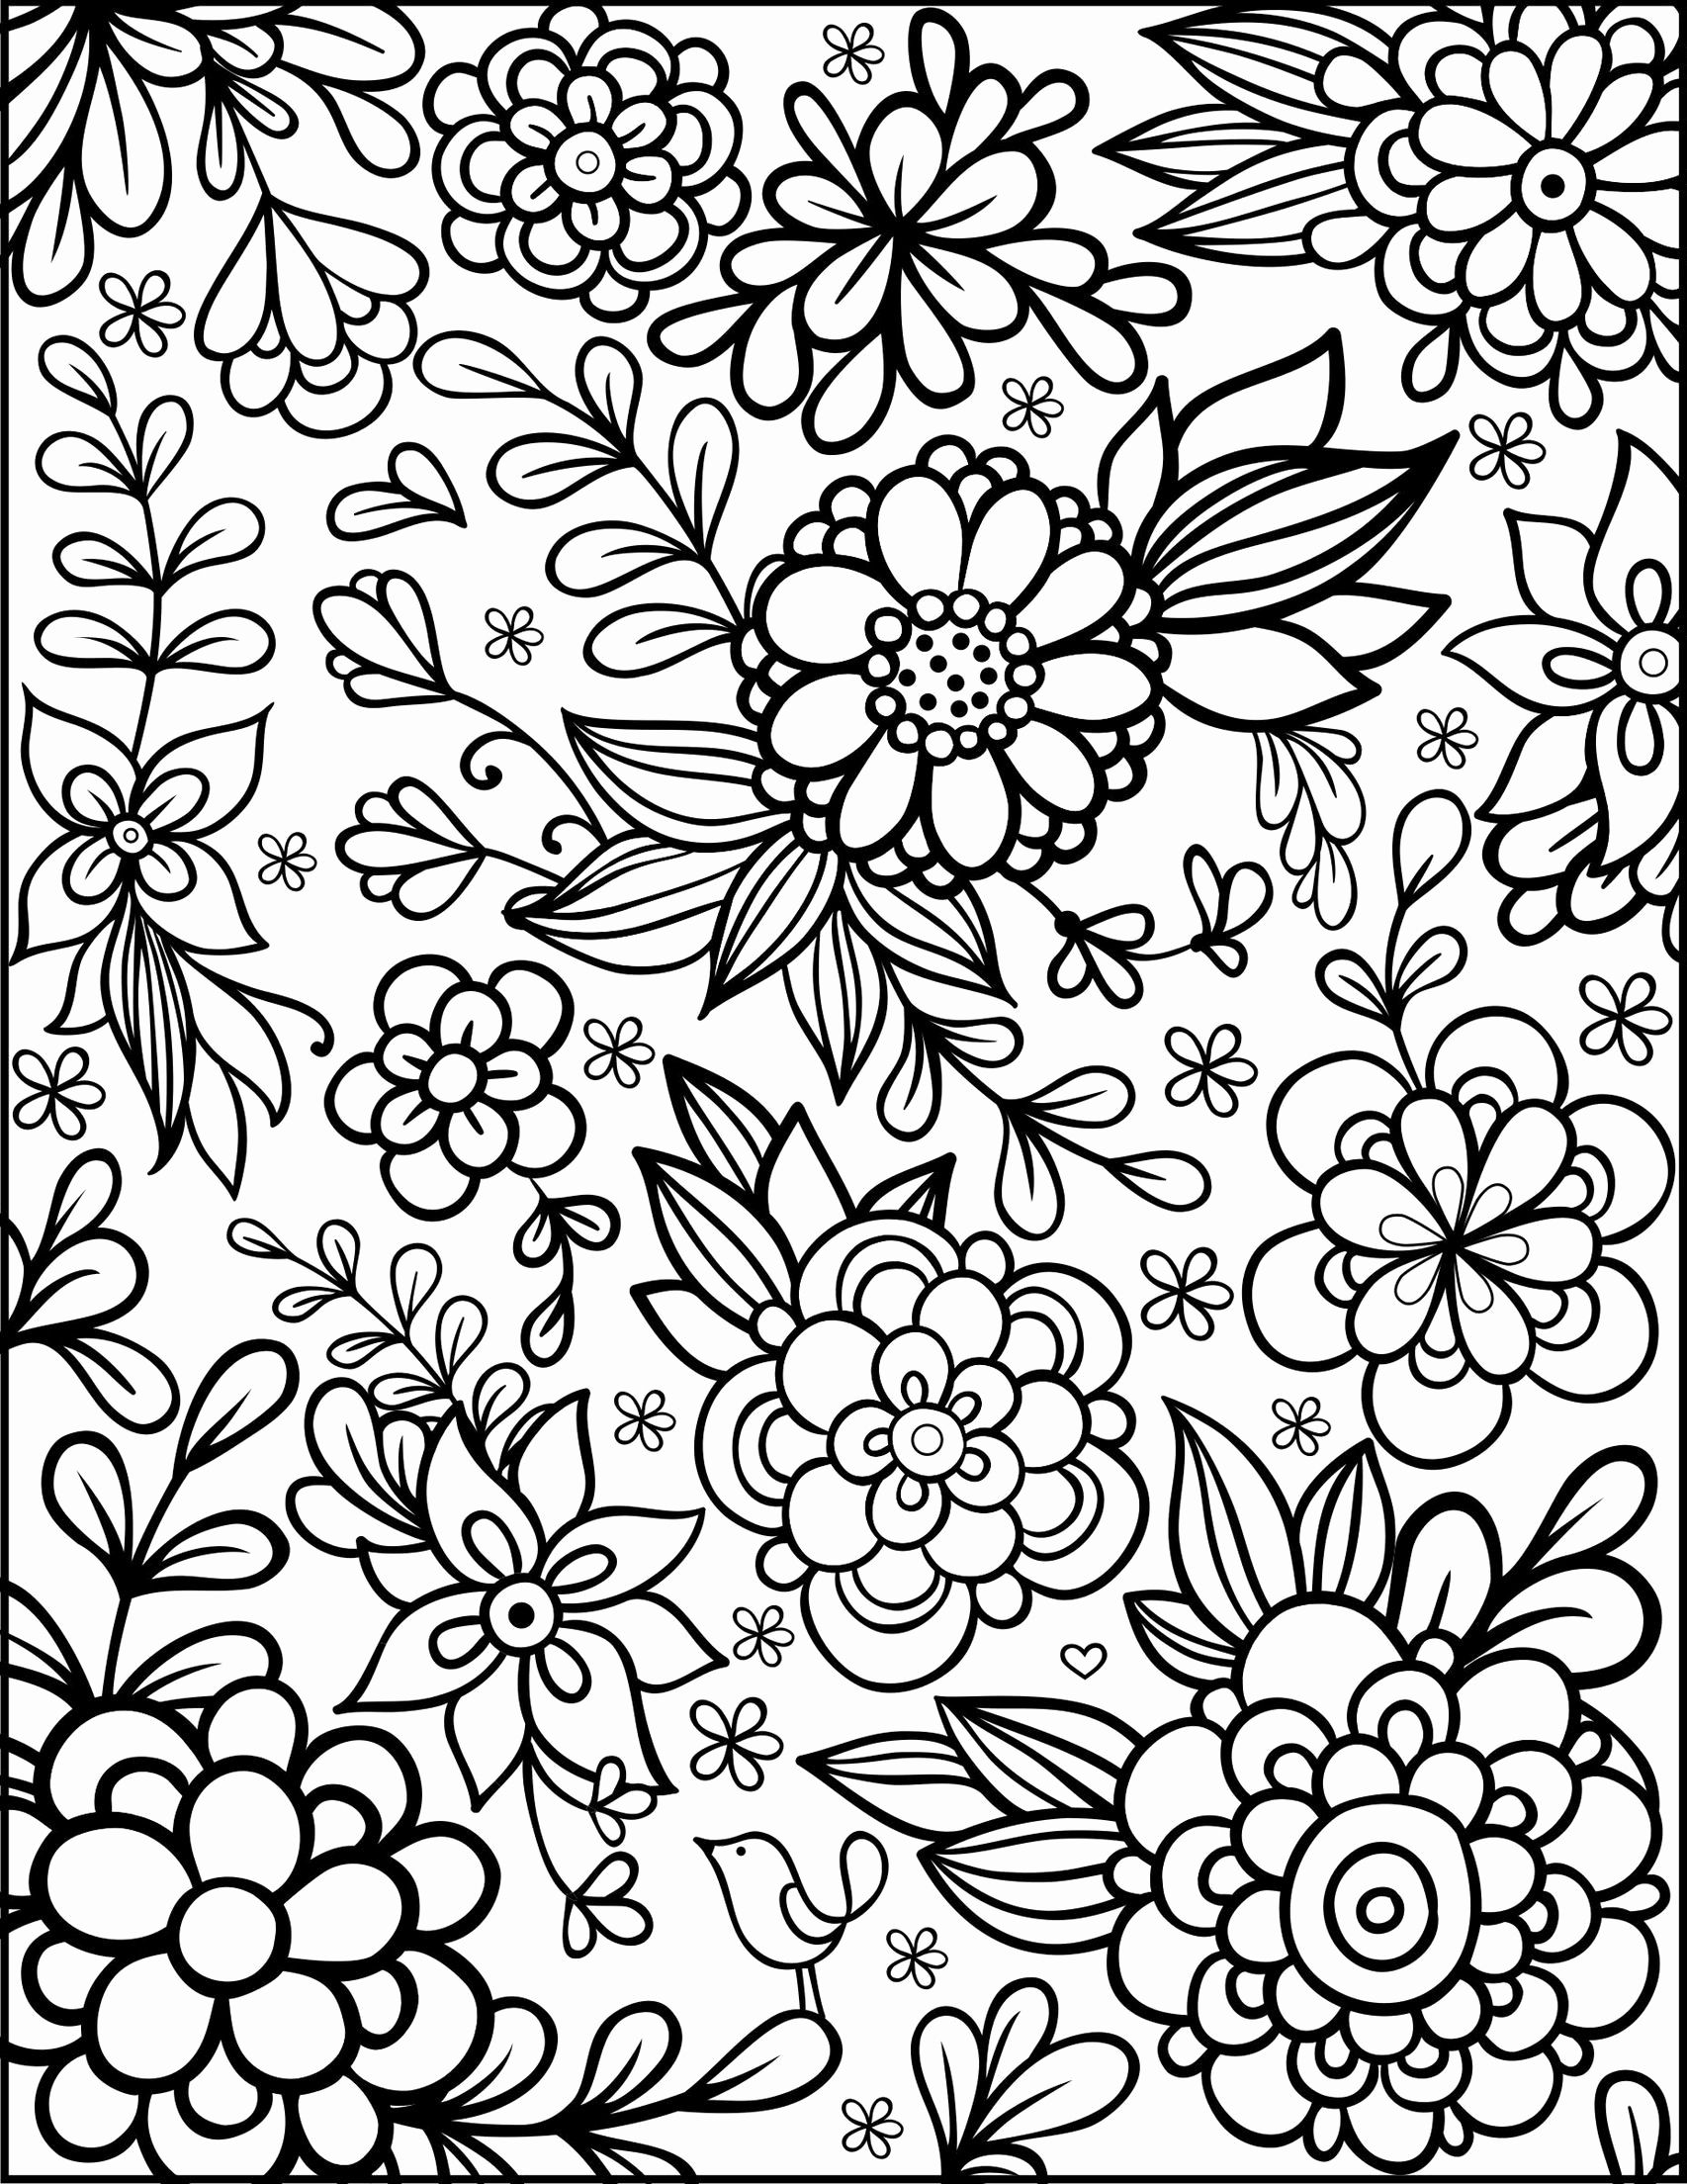 Pin On Flower Coloring Pages For Kids